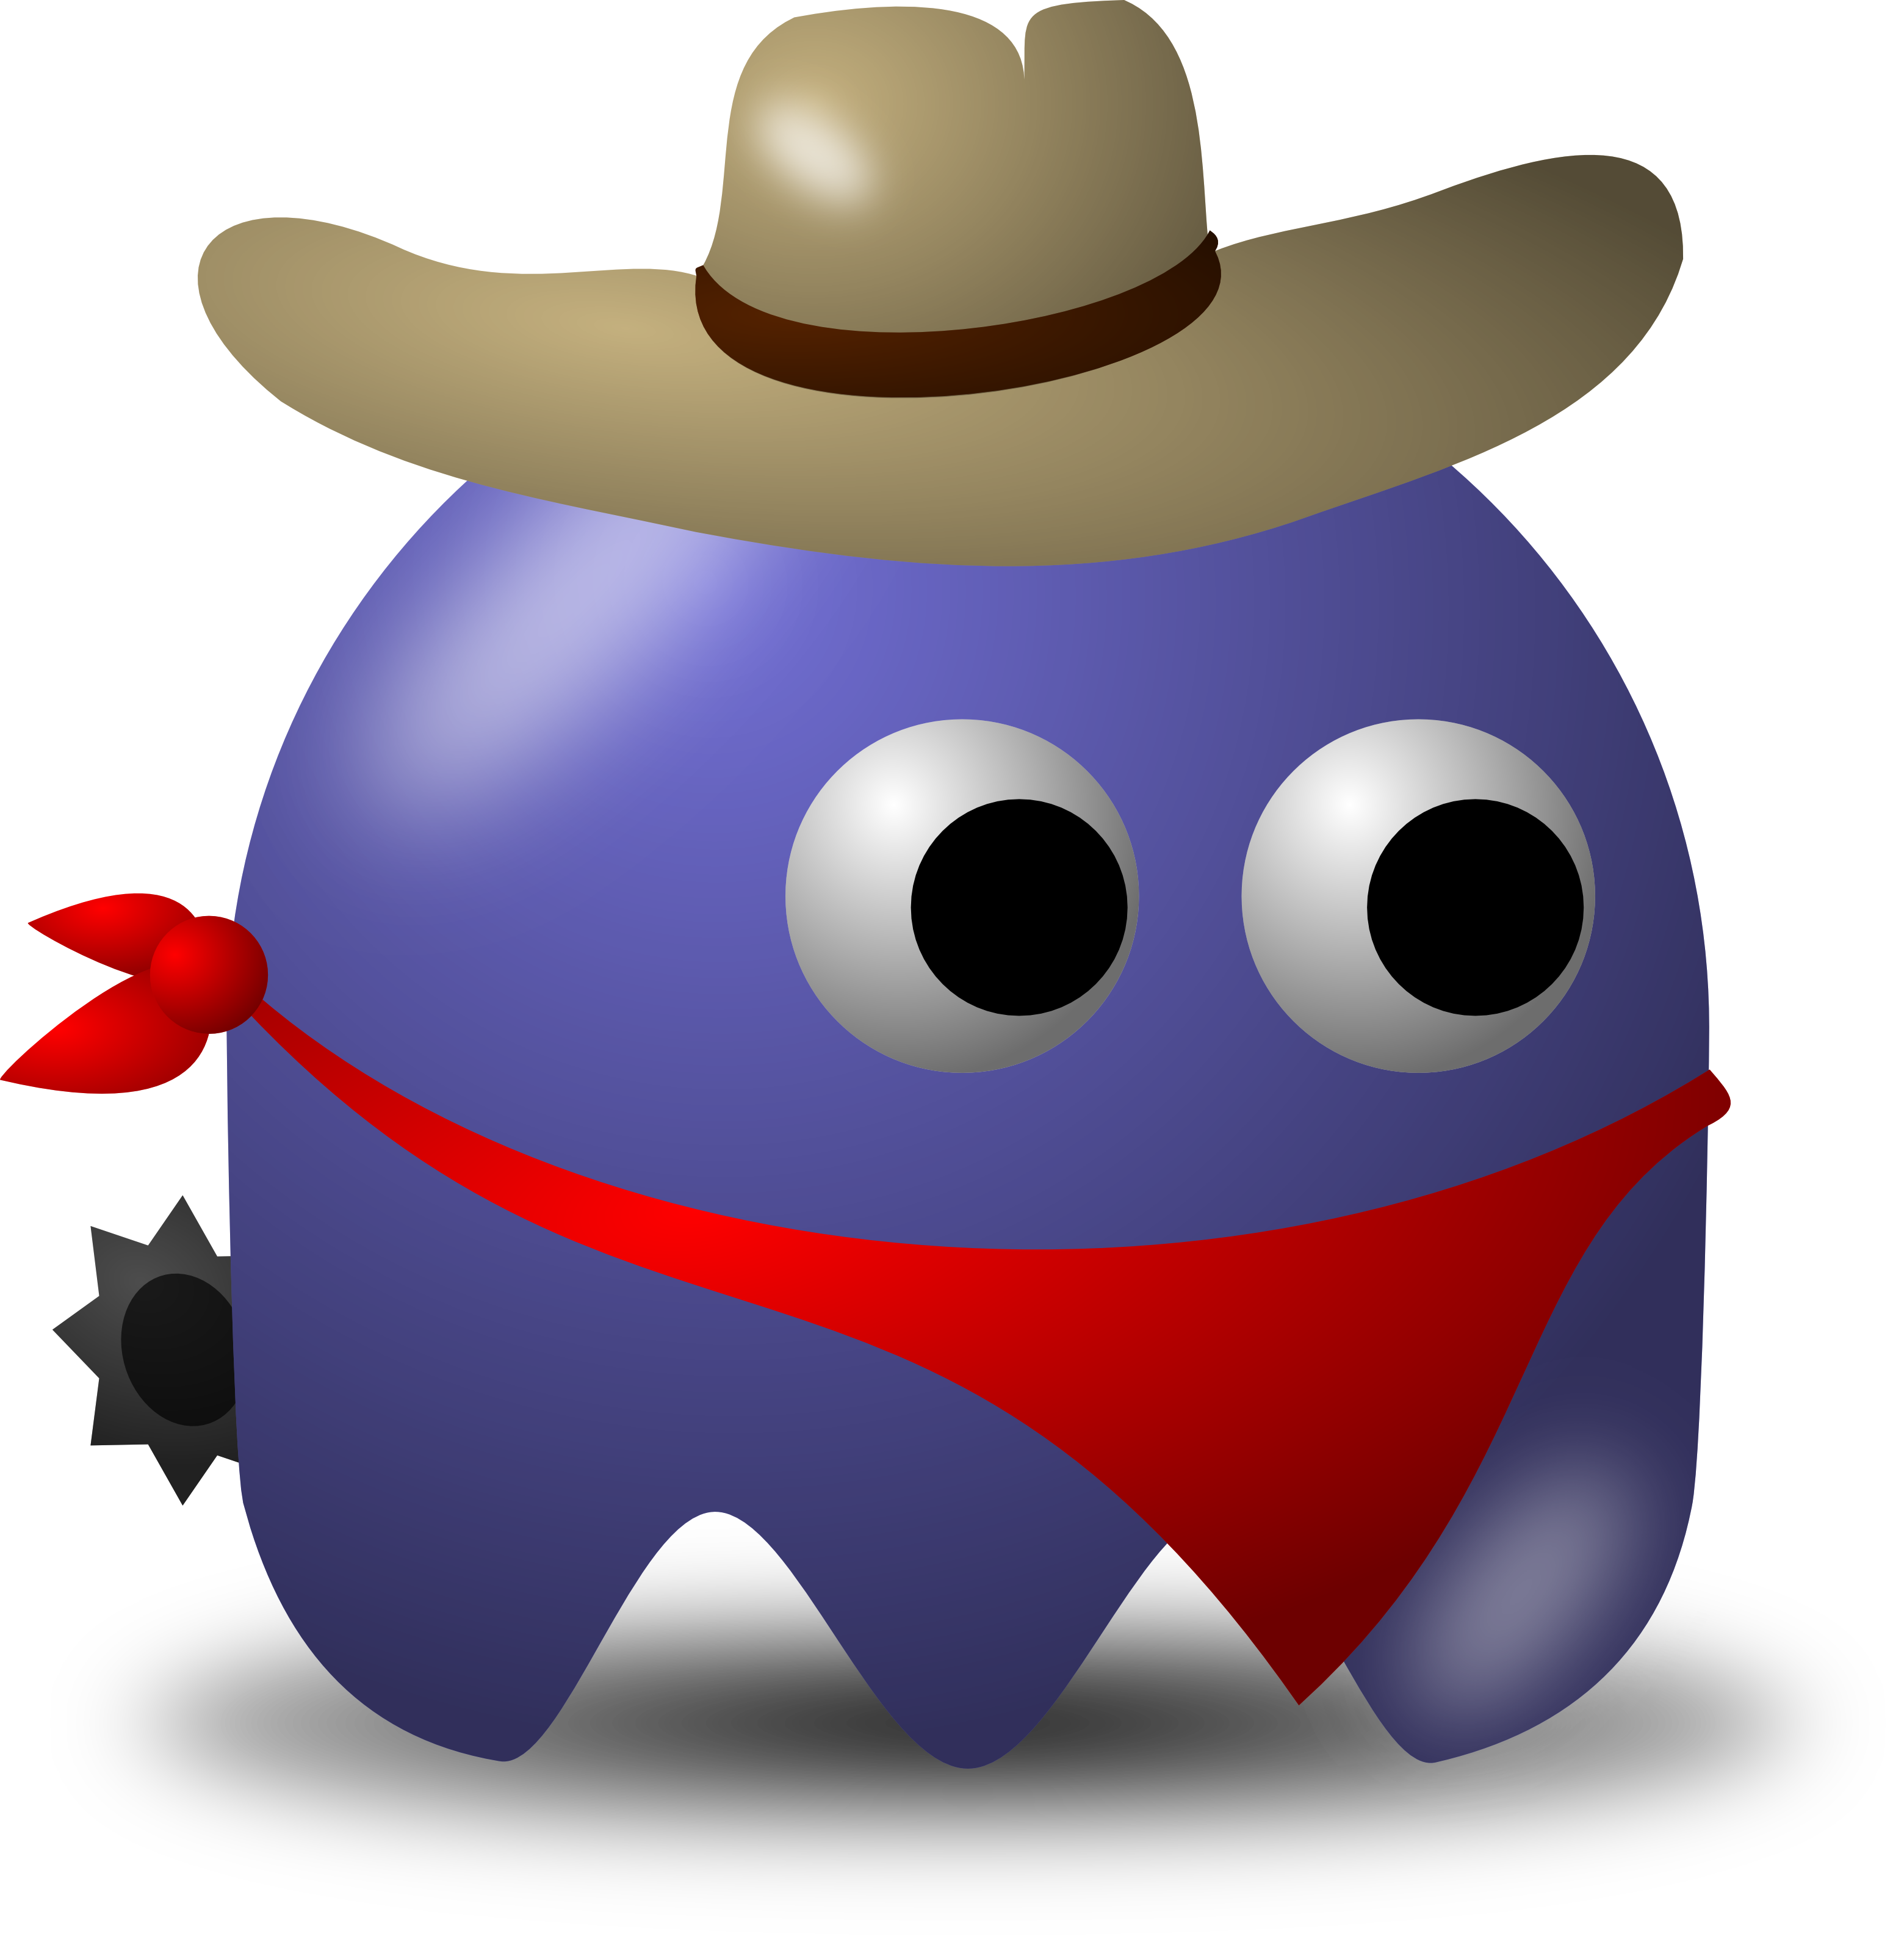 3120x3200 Rodeo Cowbow Avatar Character With Hat, Bandana, And Spurs